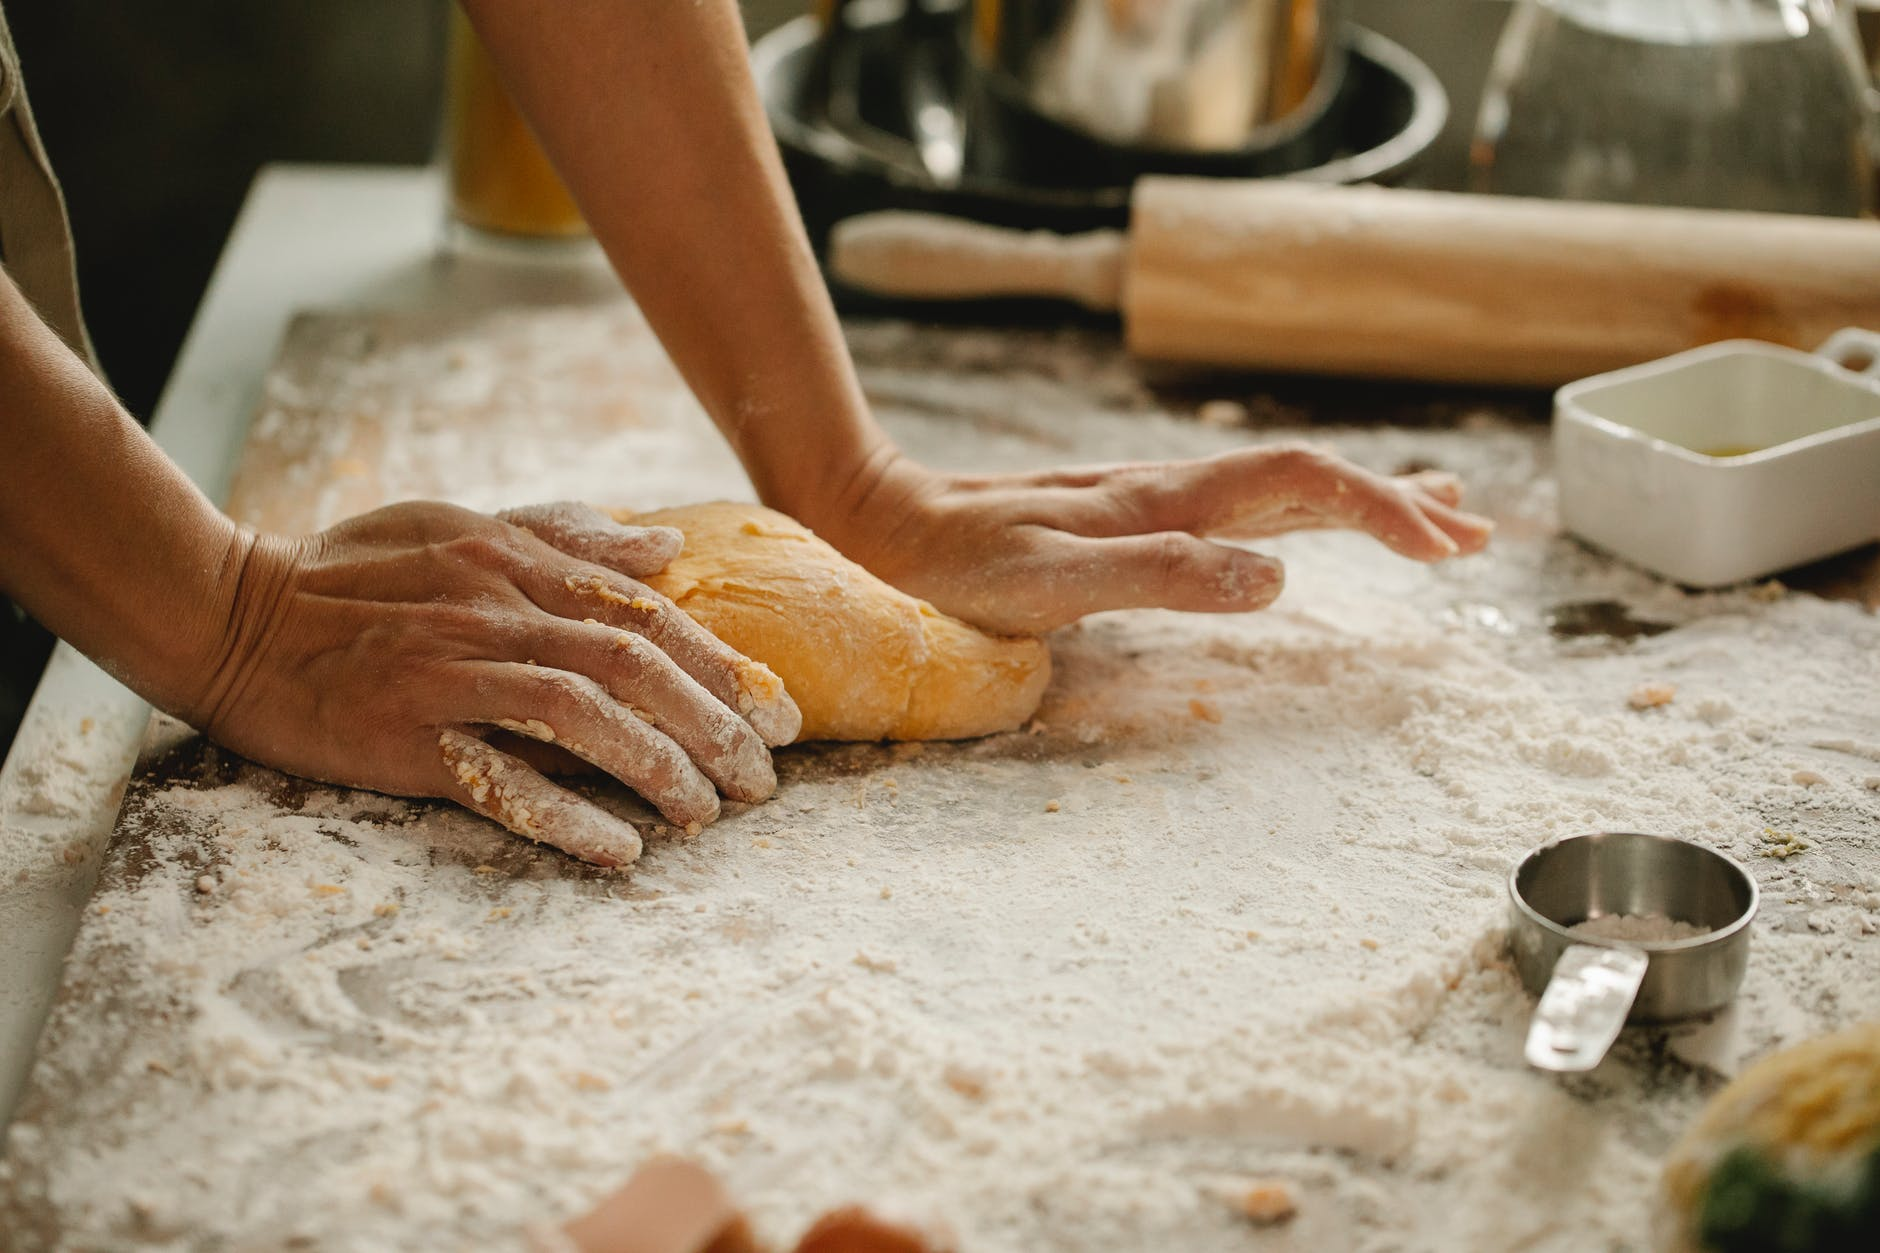 woman making pastry on table with flour